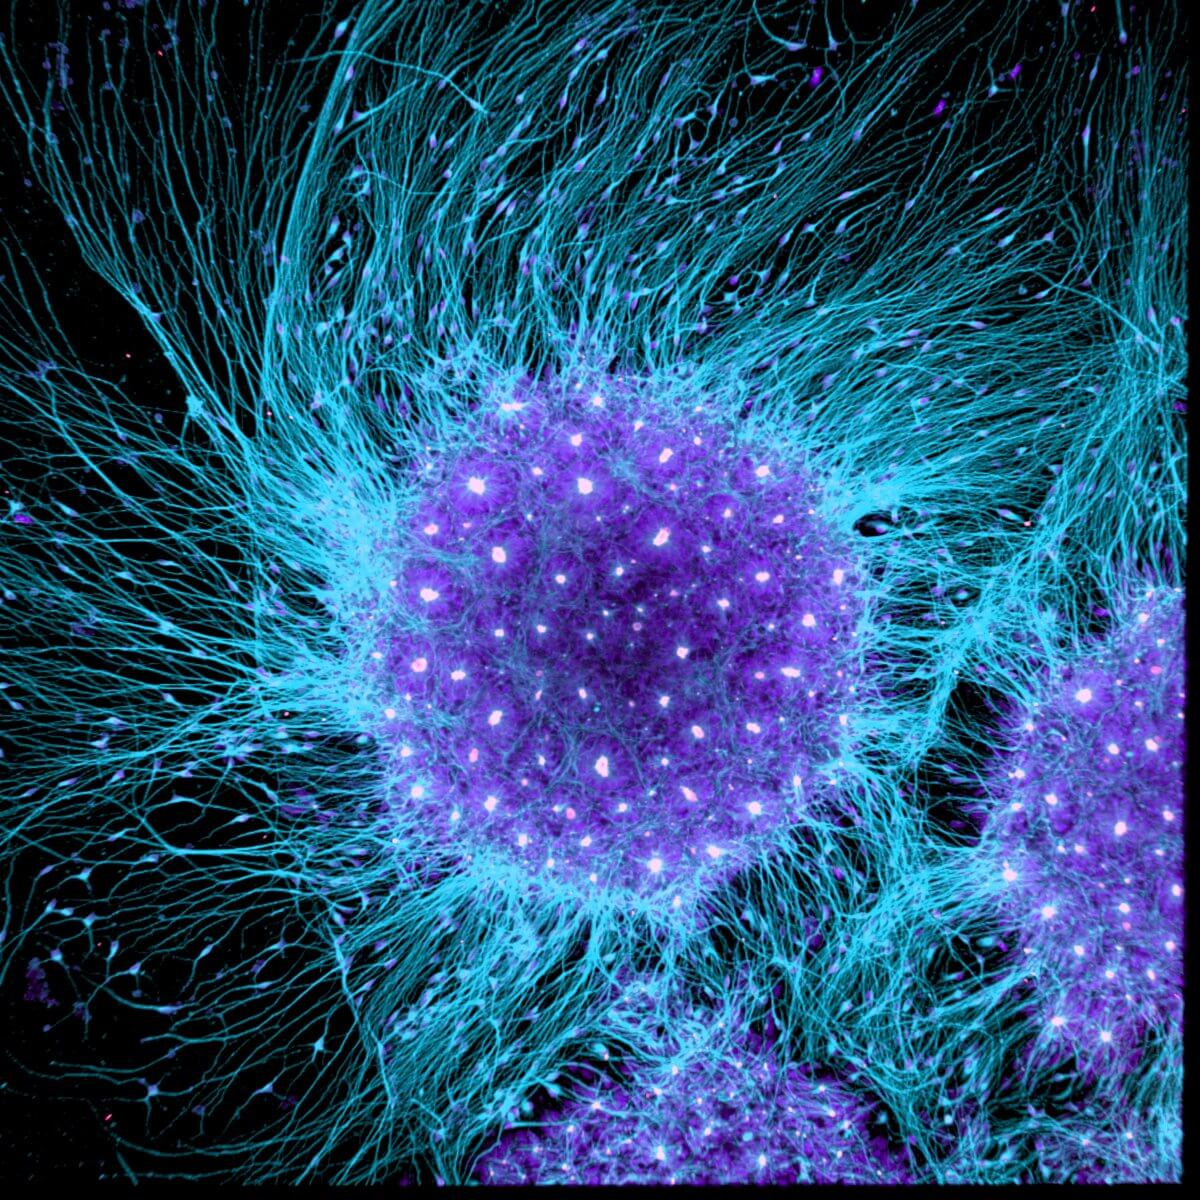 Human brain cells differentiated from embryonic stem cells